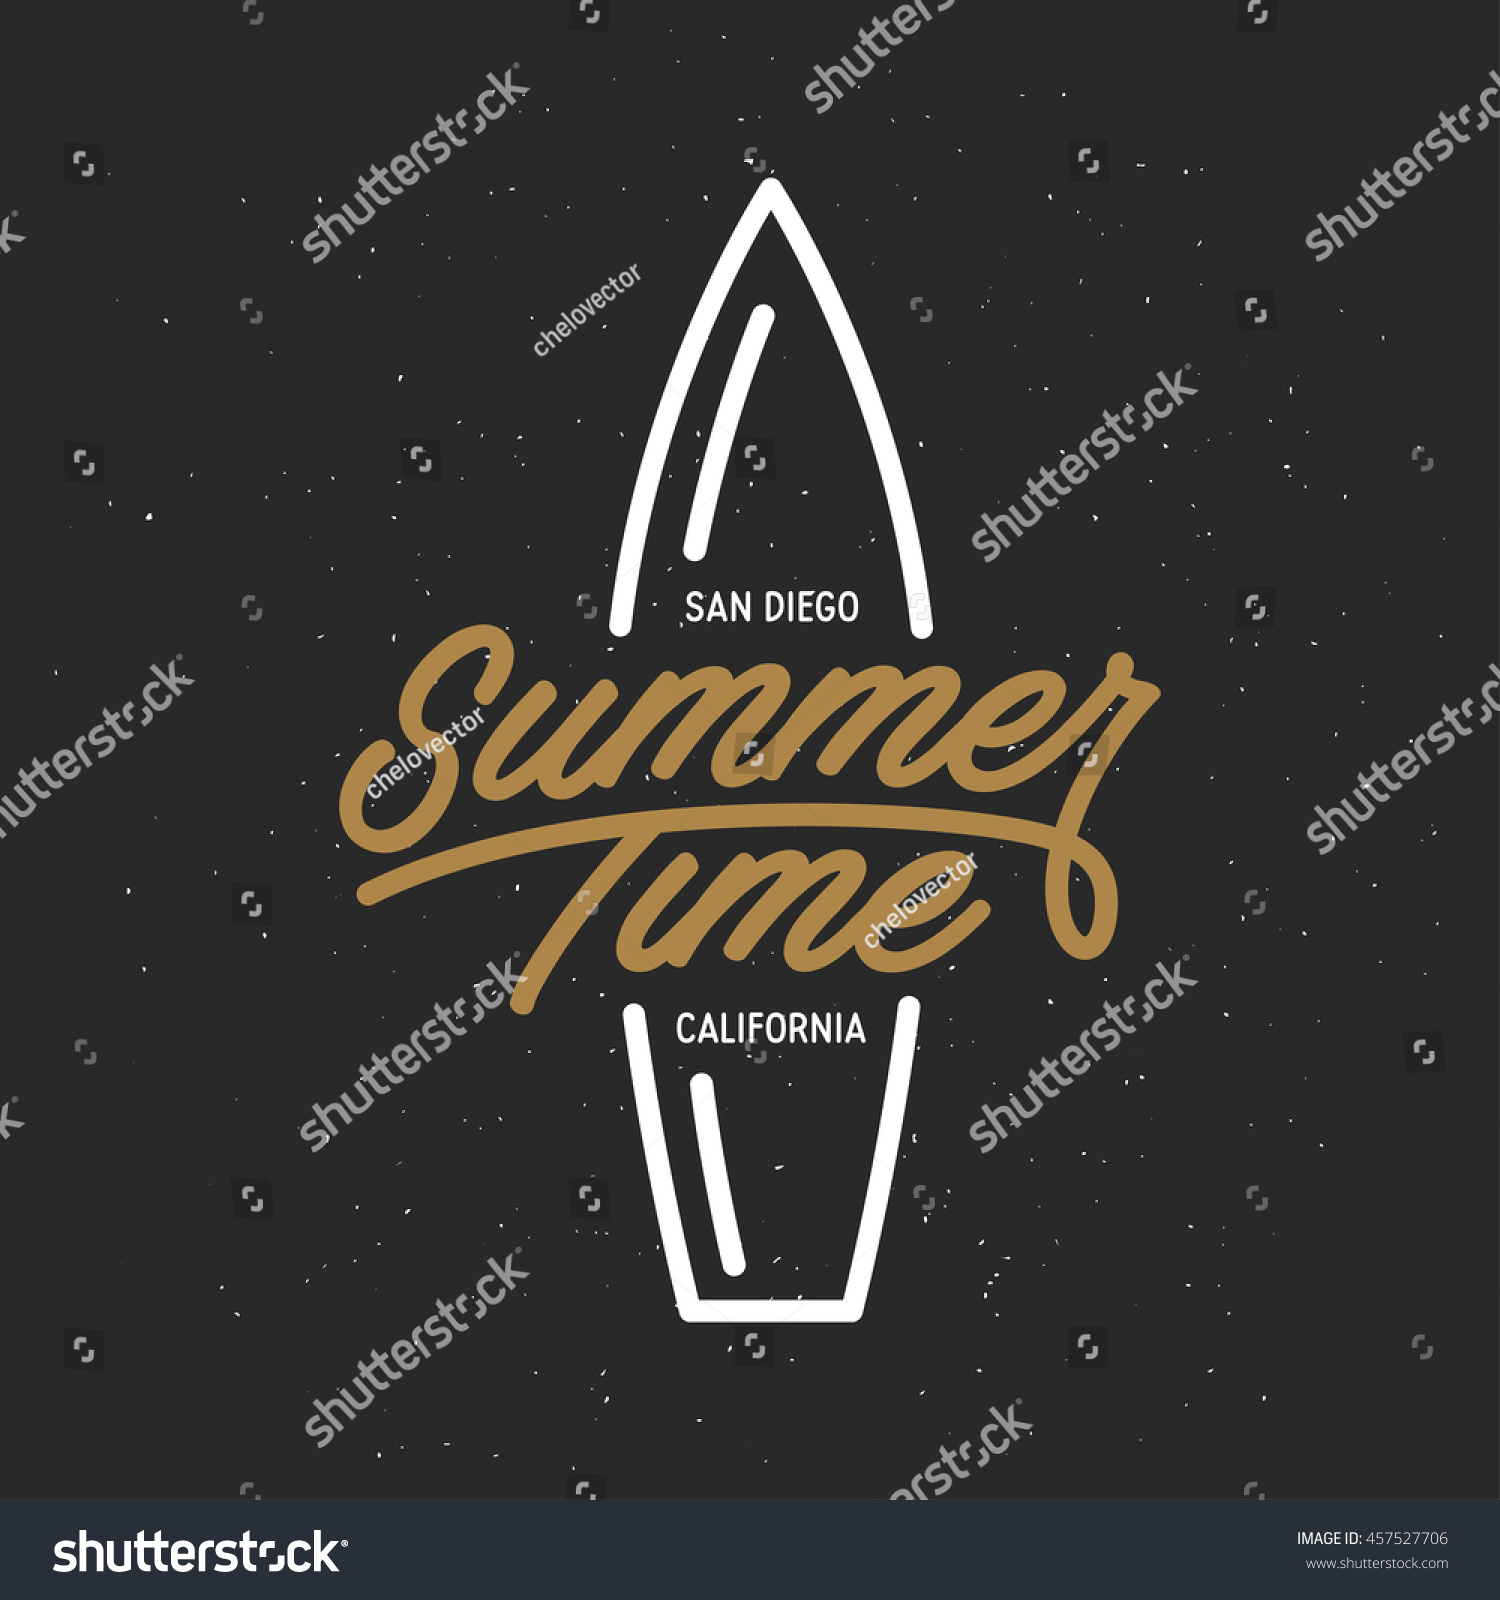 Shirt design san diego - Summer Time Lettering Poster San Diego Text Surfing Related T Shirt Design